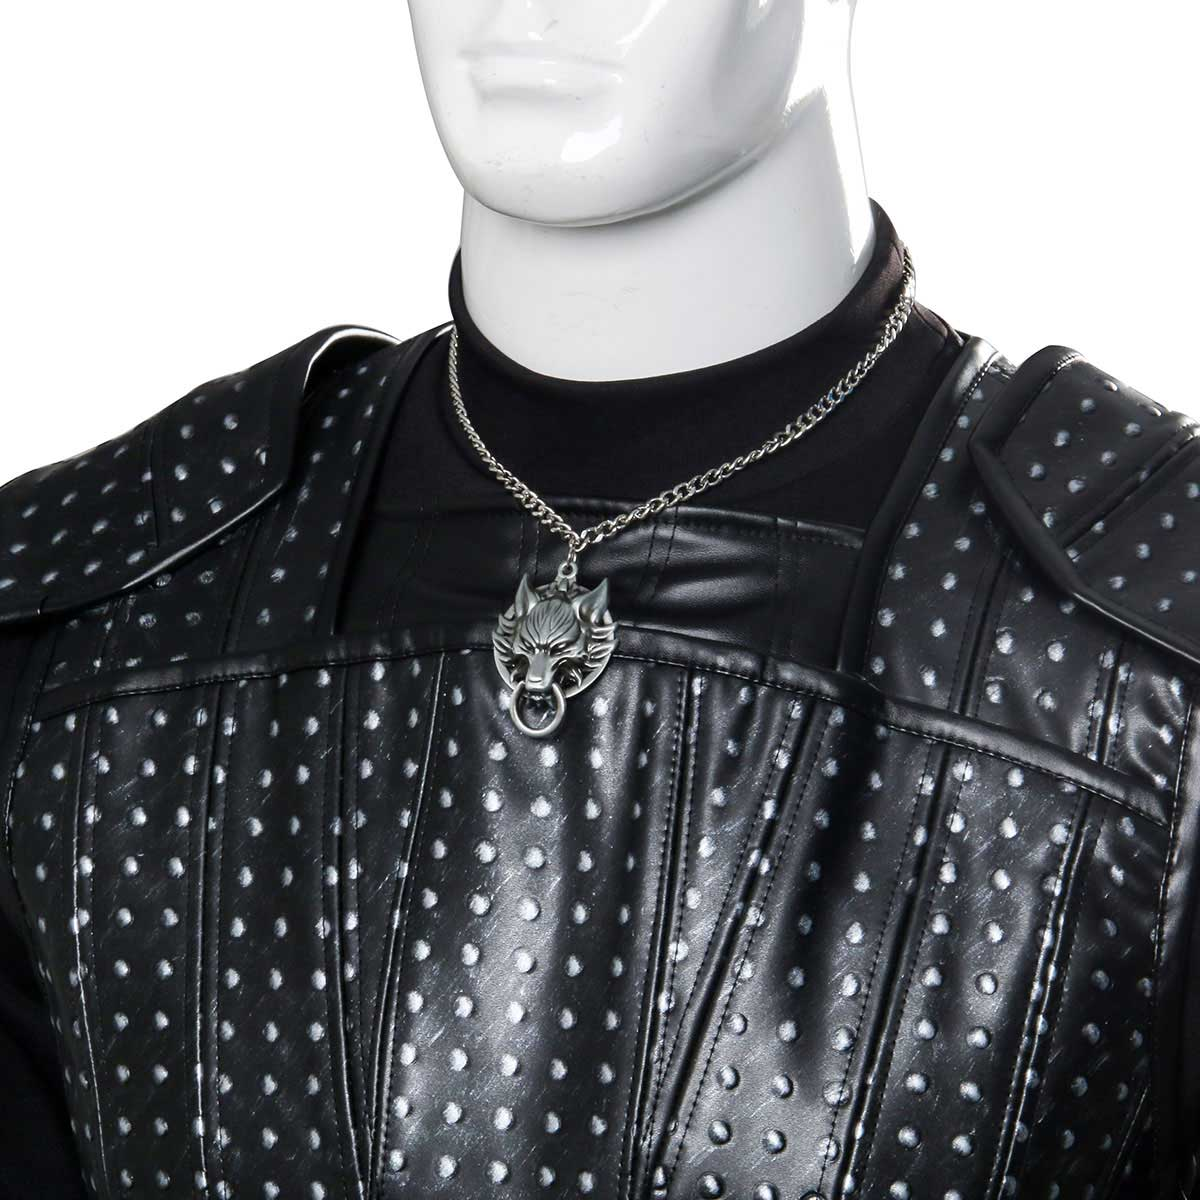 The Witcher 3 Cavill Geralt of Rivia Uniform Cosplay Costume